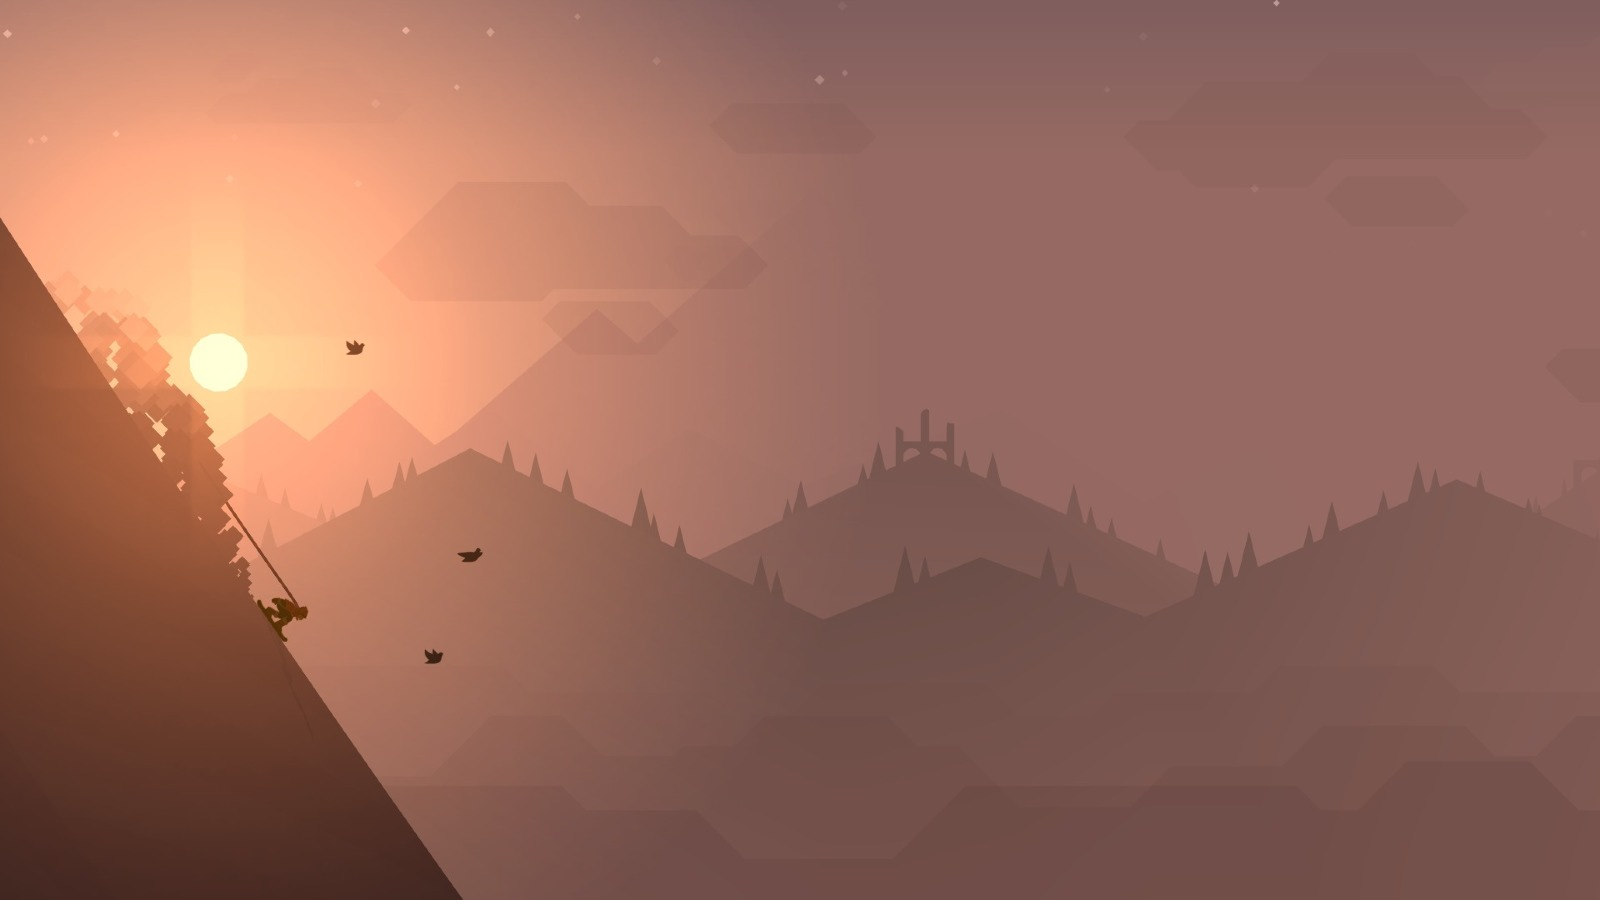 Altos Adventure Minimalist Mountain, Full HD Wallpaper